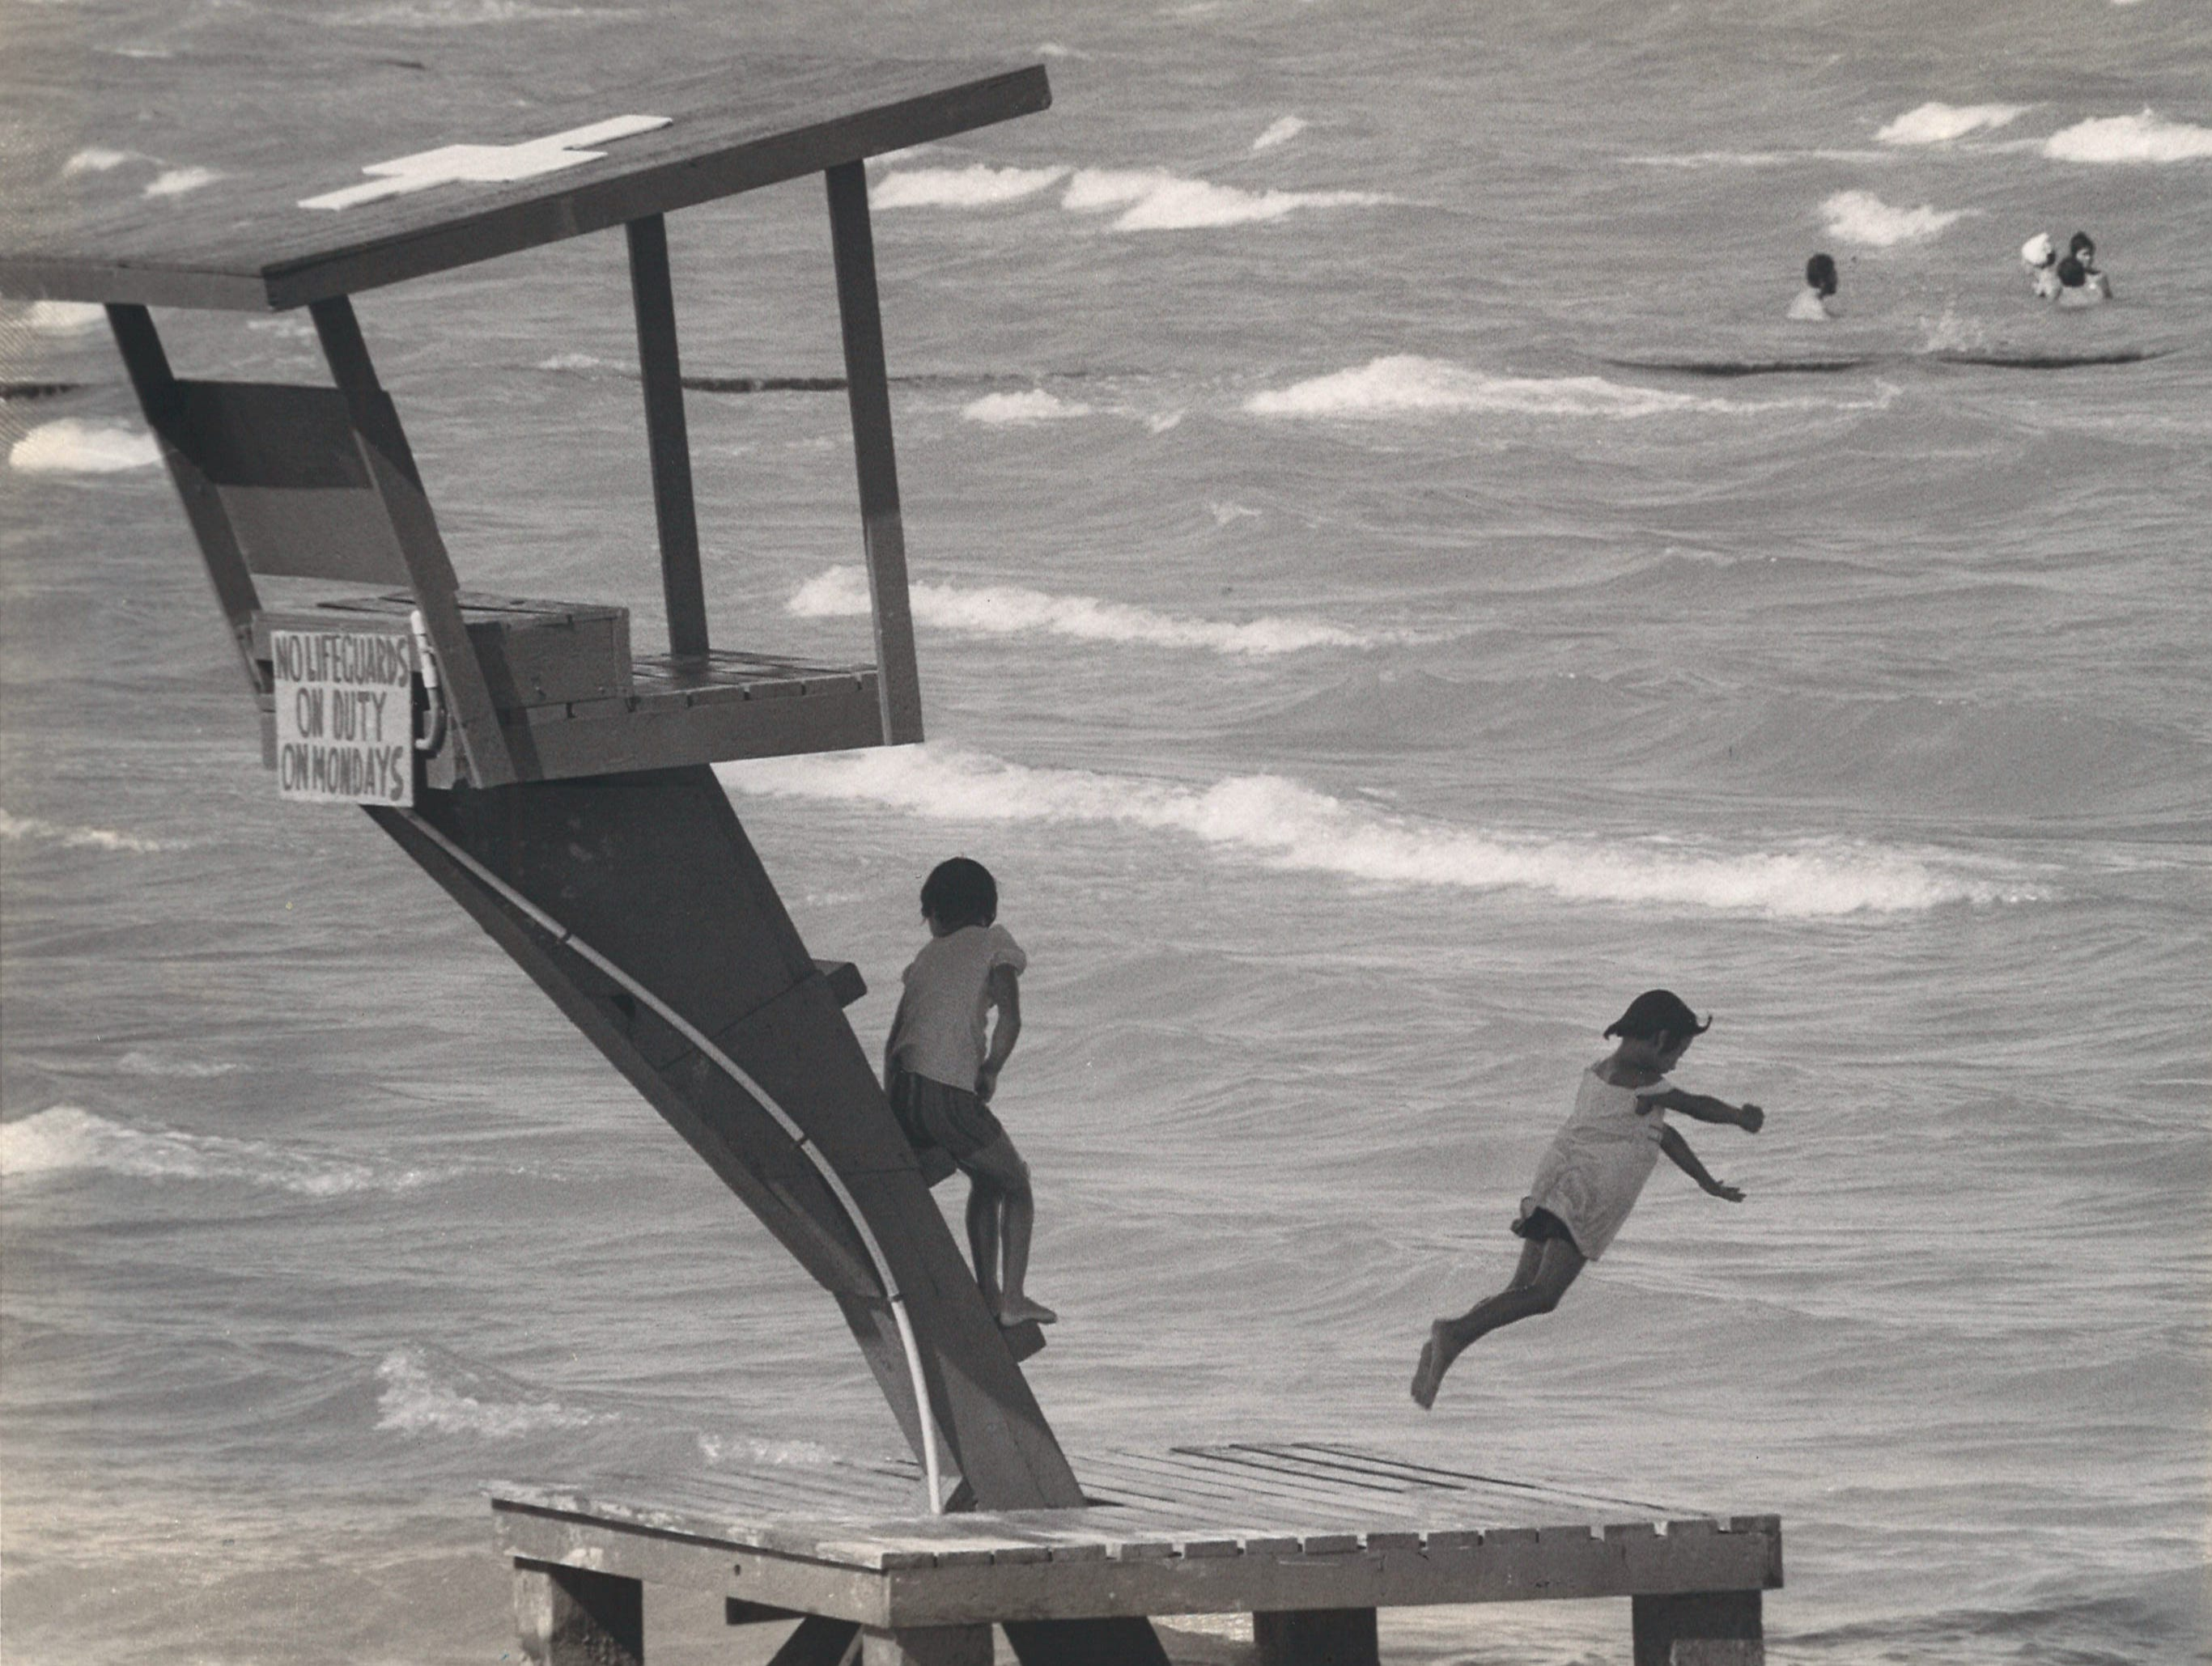 Two children play on the lifeguard stands on McGee Beach in downtown Corpus Christi on Aug. 8, 1977.